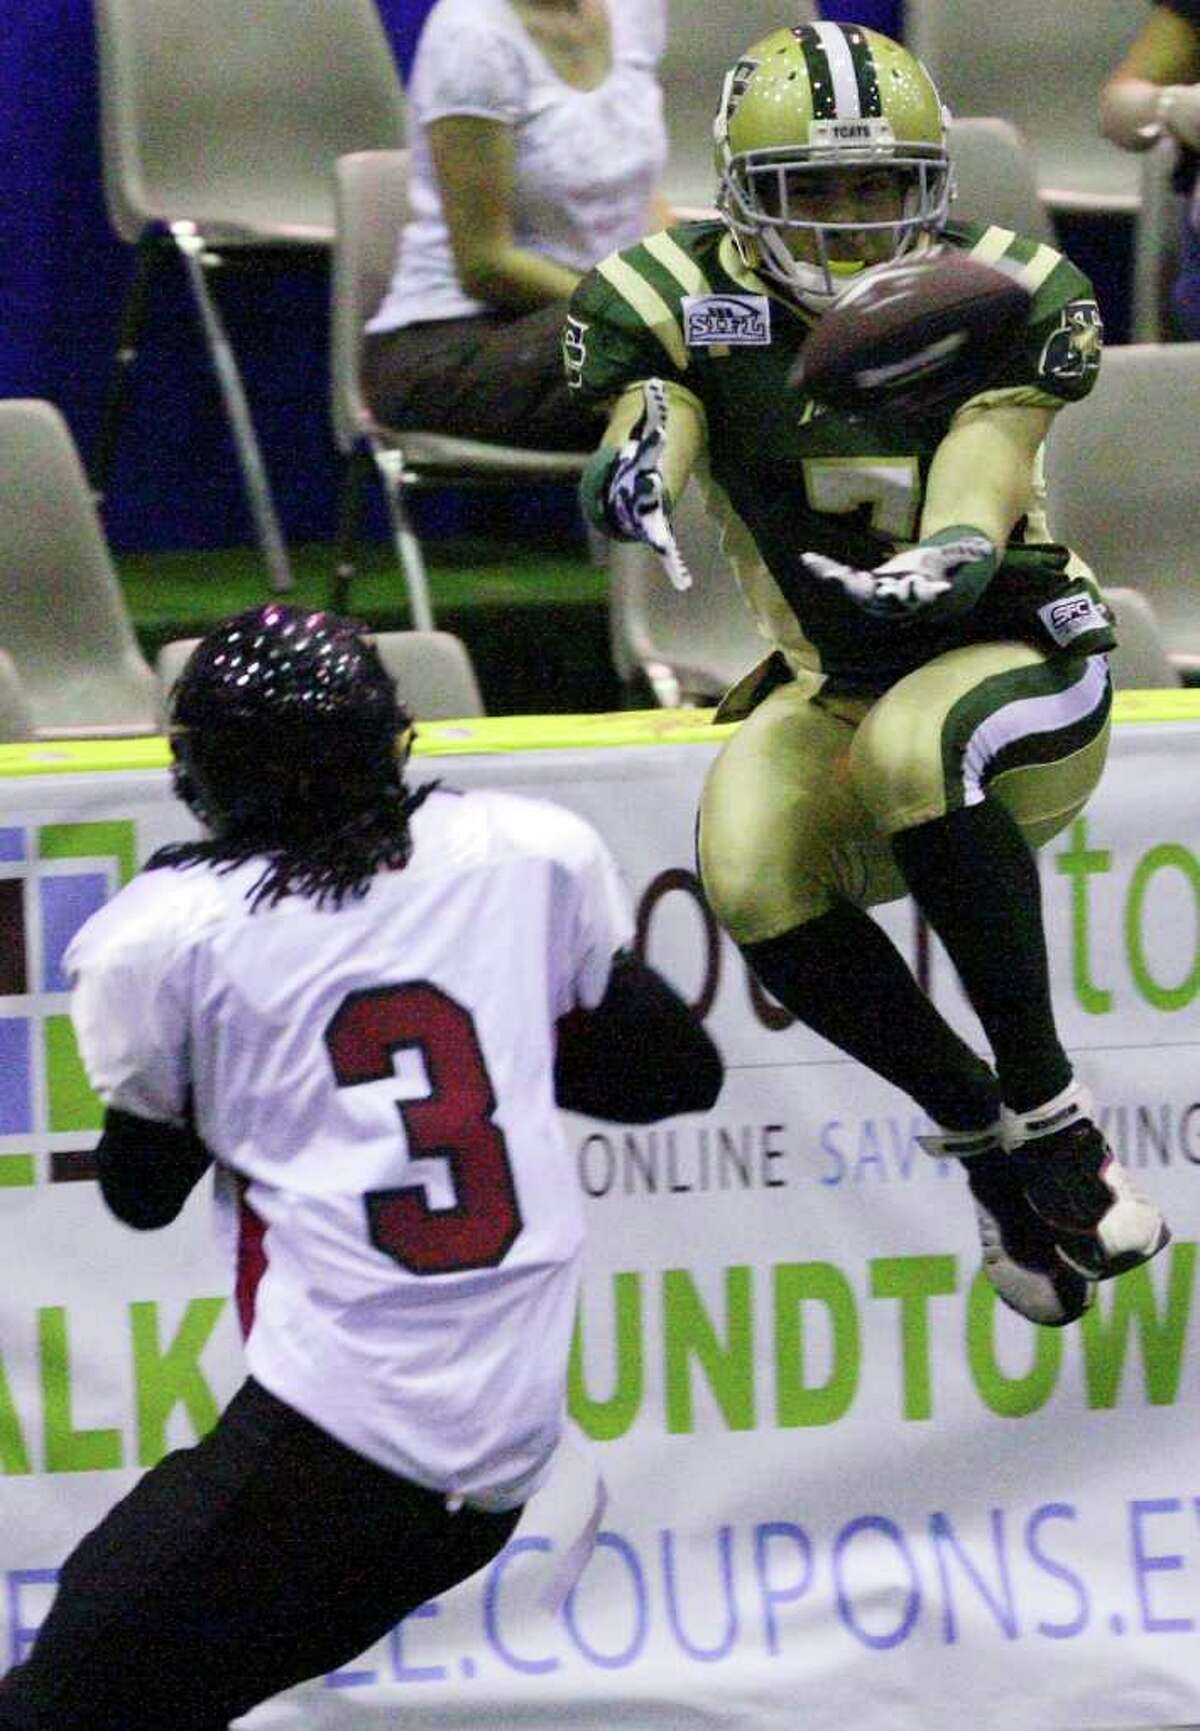 Former Holmes and Baylor standout Robert Quiroga, shown playing for the Austin Turfcats in 2009, is a free agent after catching 126 passes for the AFL's Orlando Predators last season.